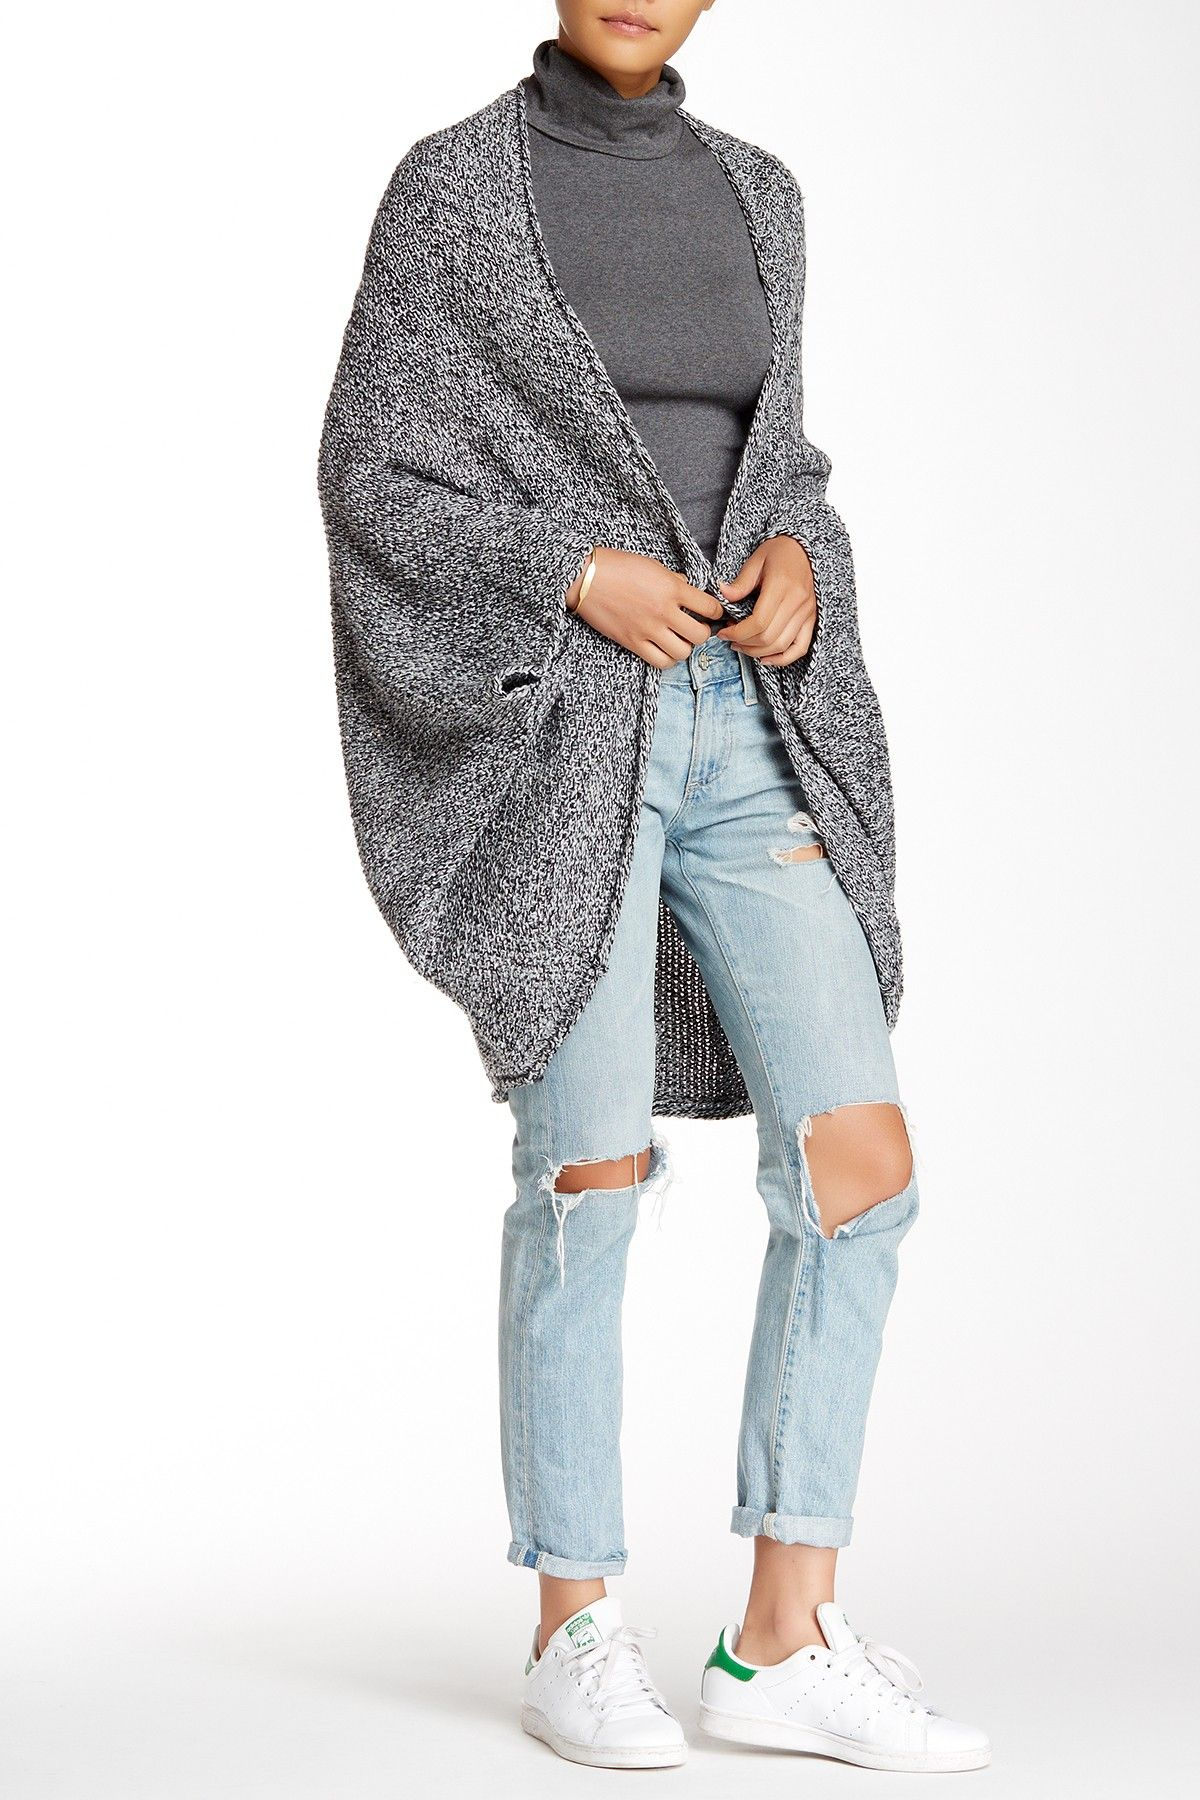 ASTR | Marled Open Front Cardigan (Juniors) | Nordstrom Rack  Sponsored by Nordstrom Rack.